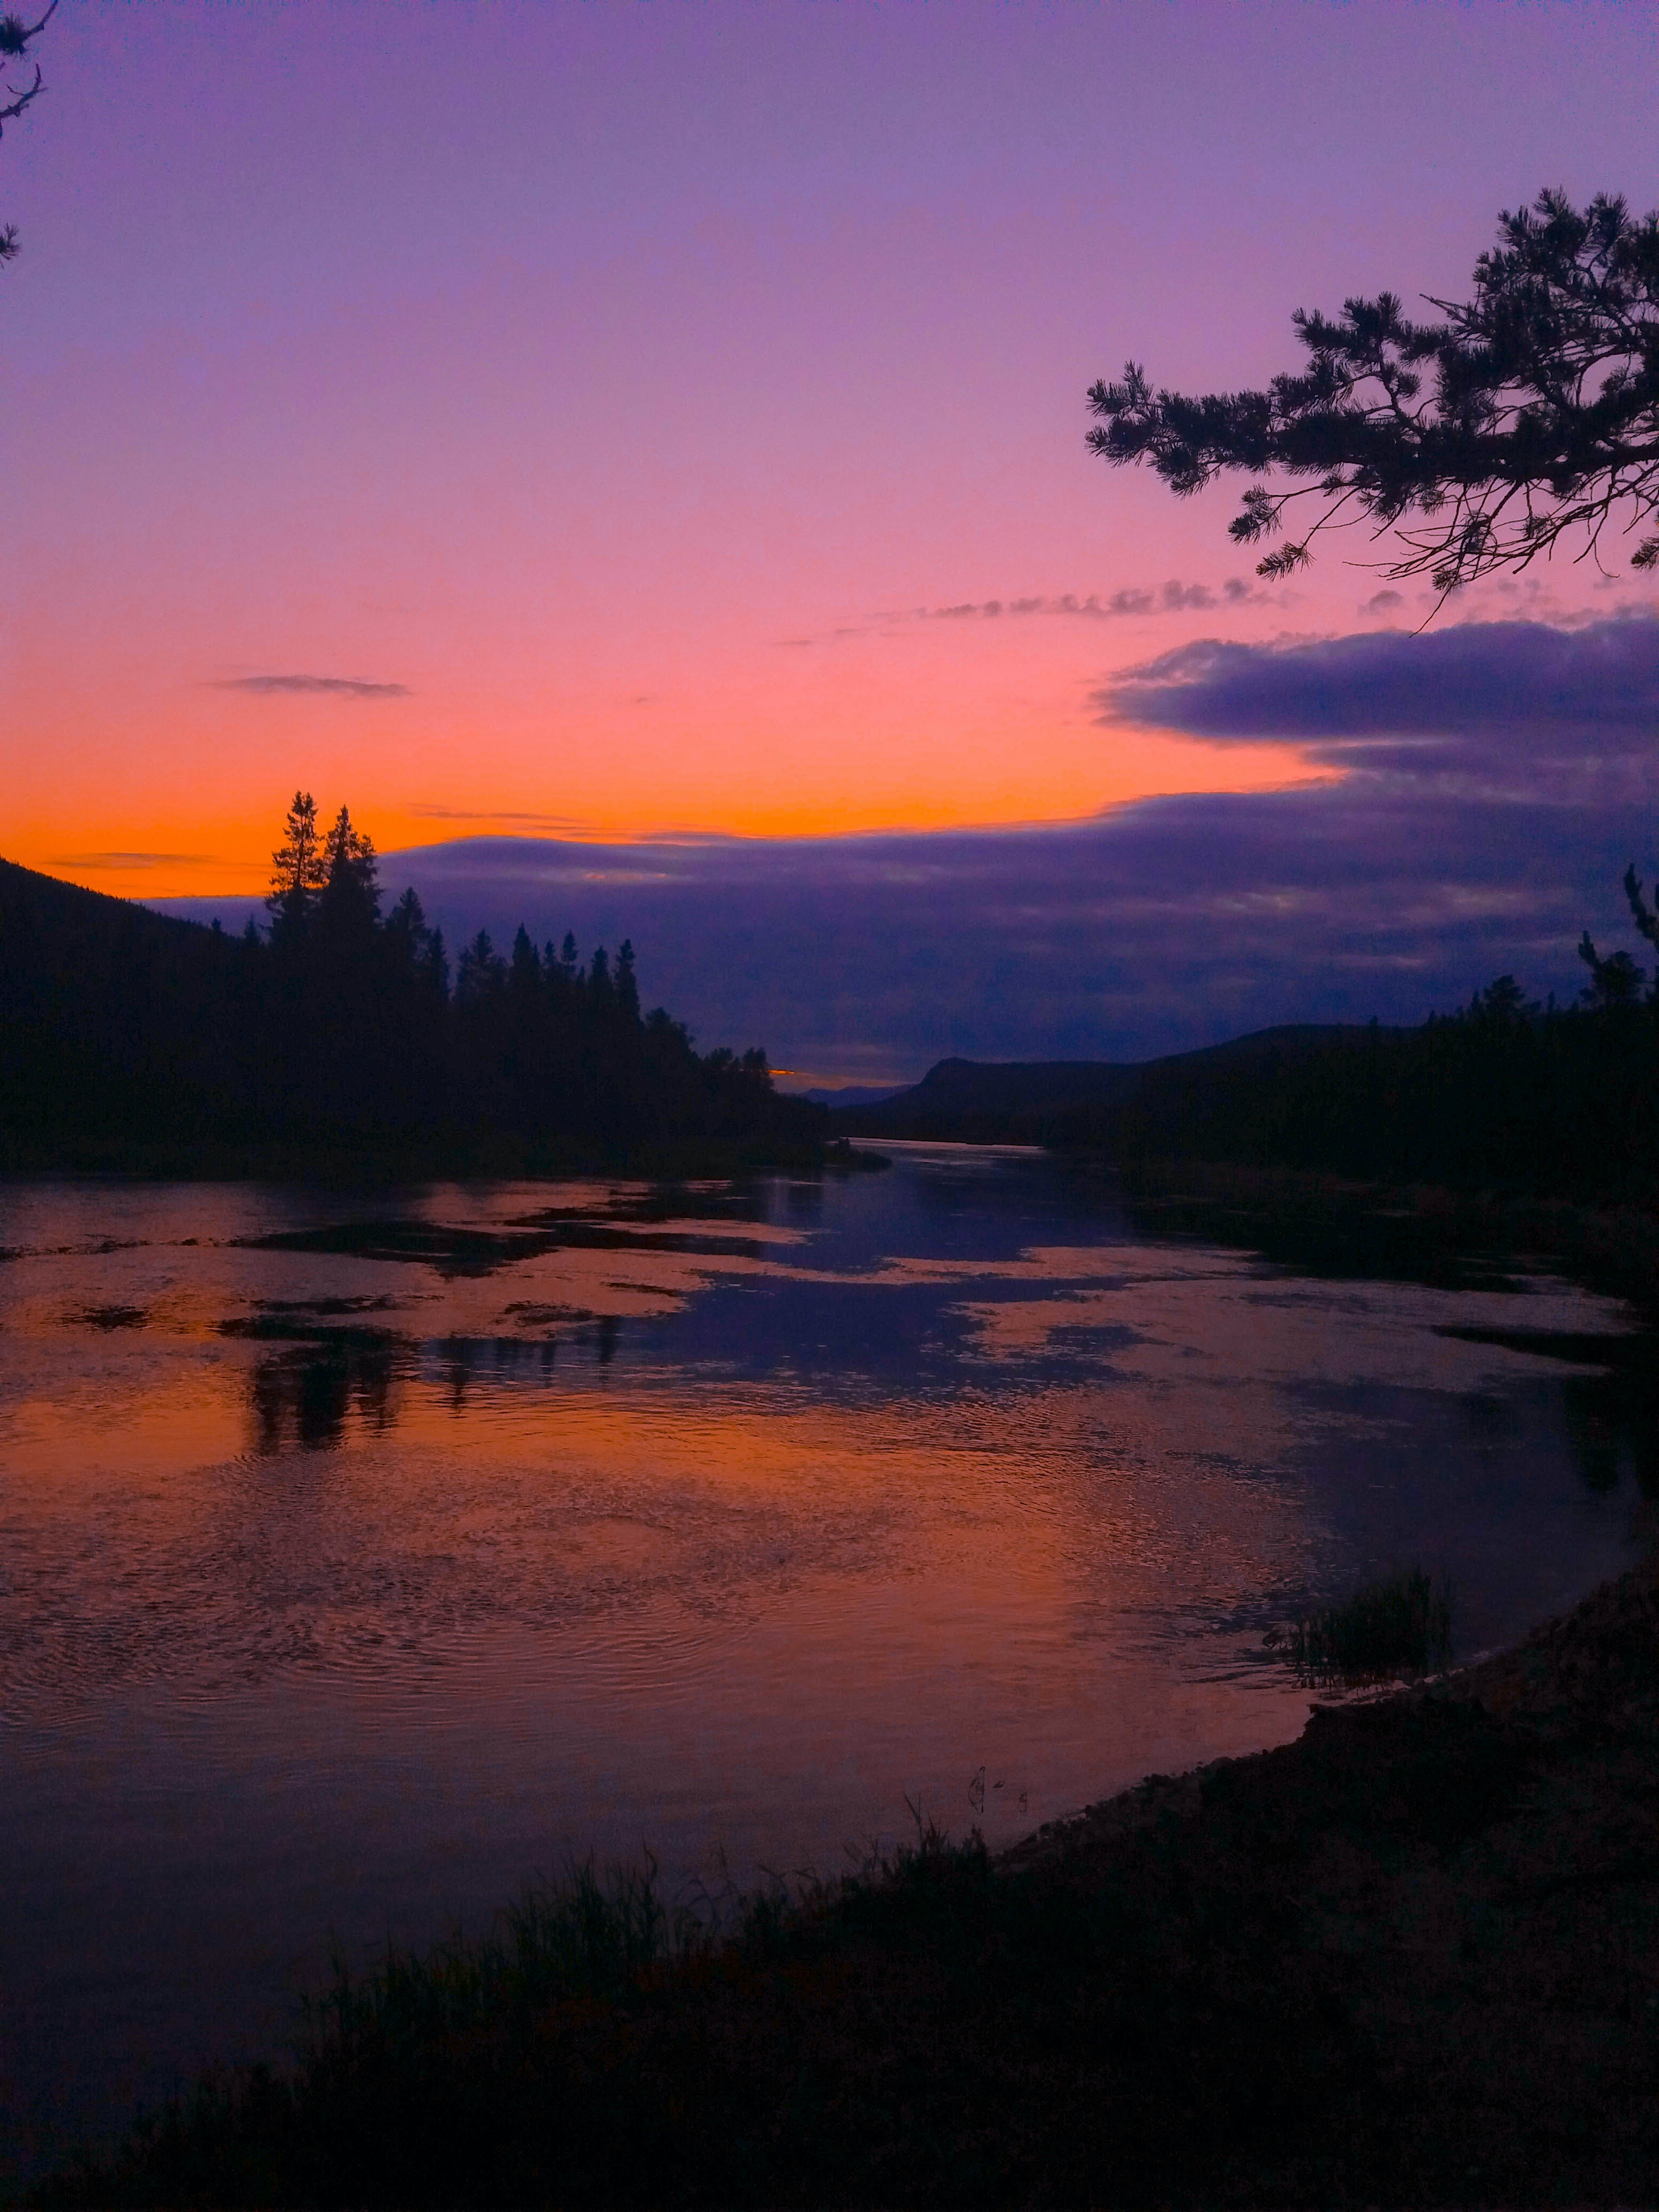 Free stock photo of #landscape #sunset #river #norway #sky #clouds